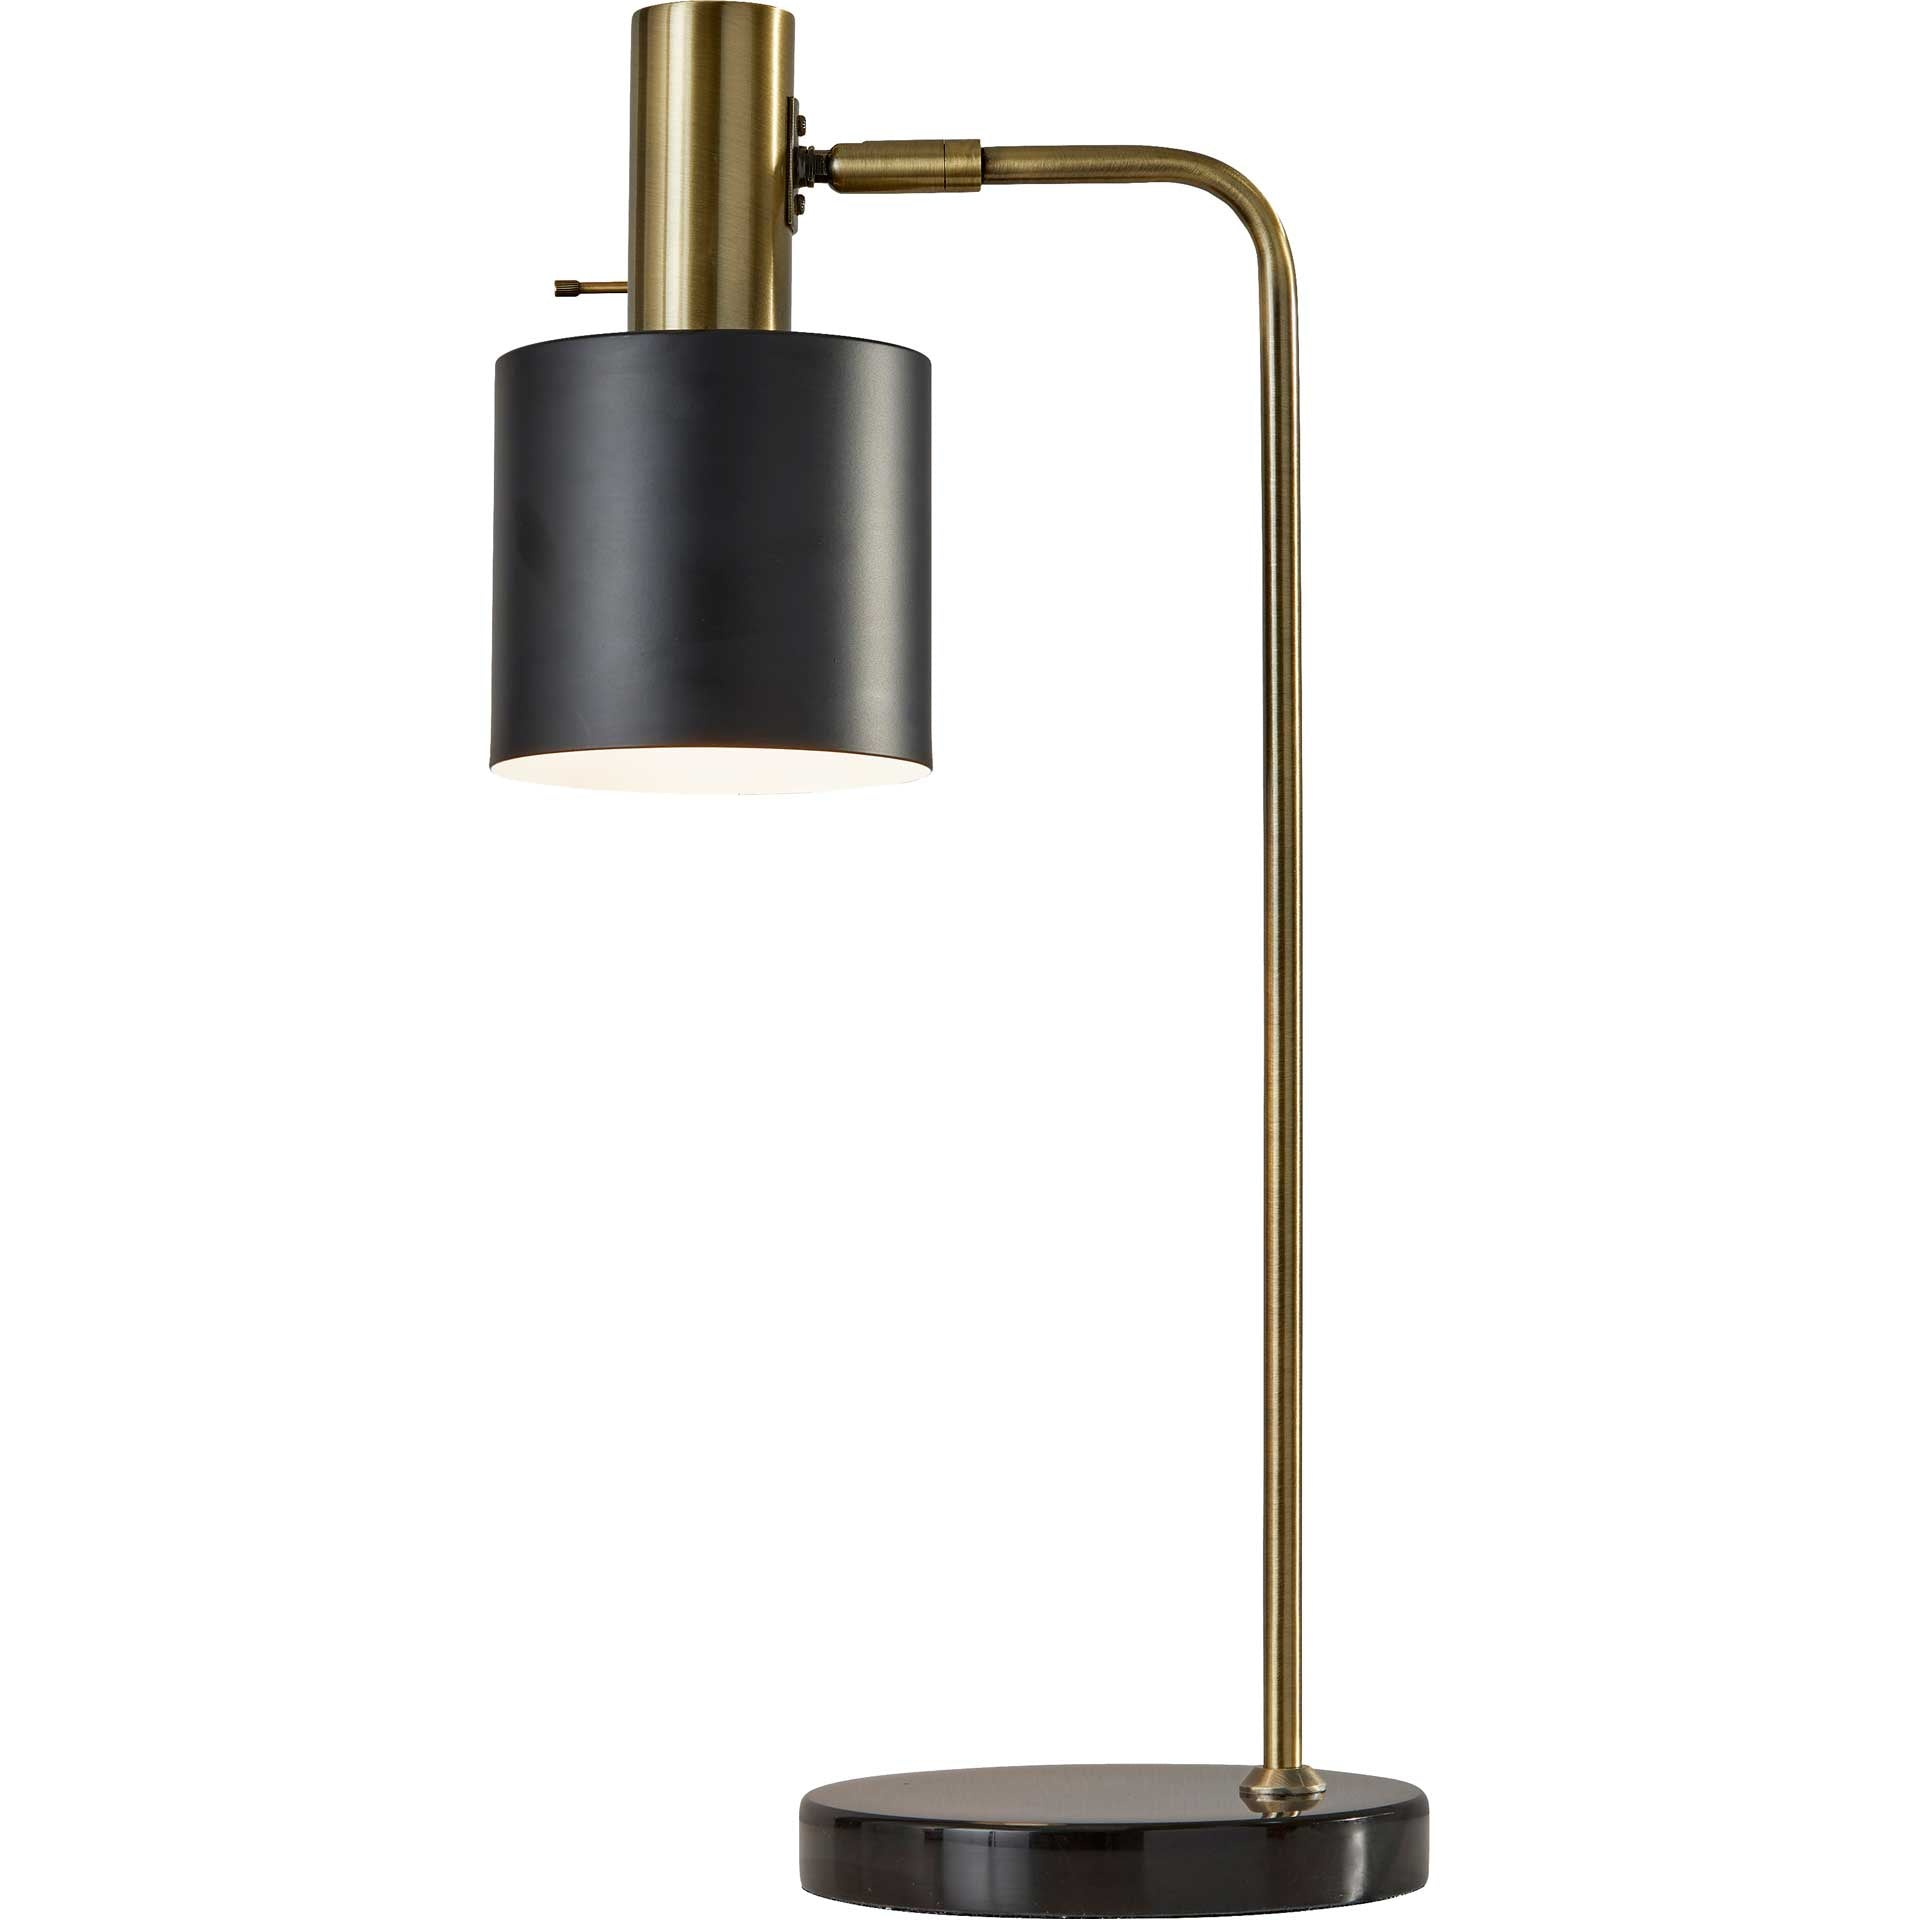 Epinal Desk Lamp Antique Brass/Black